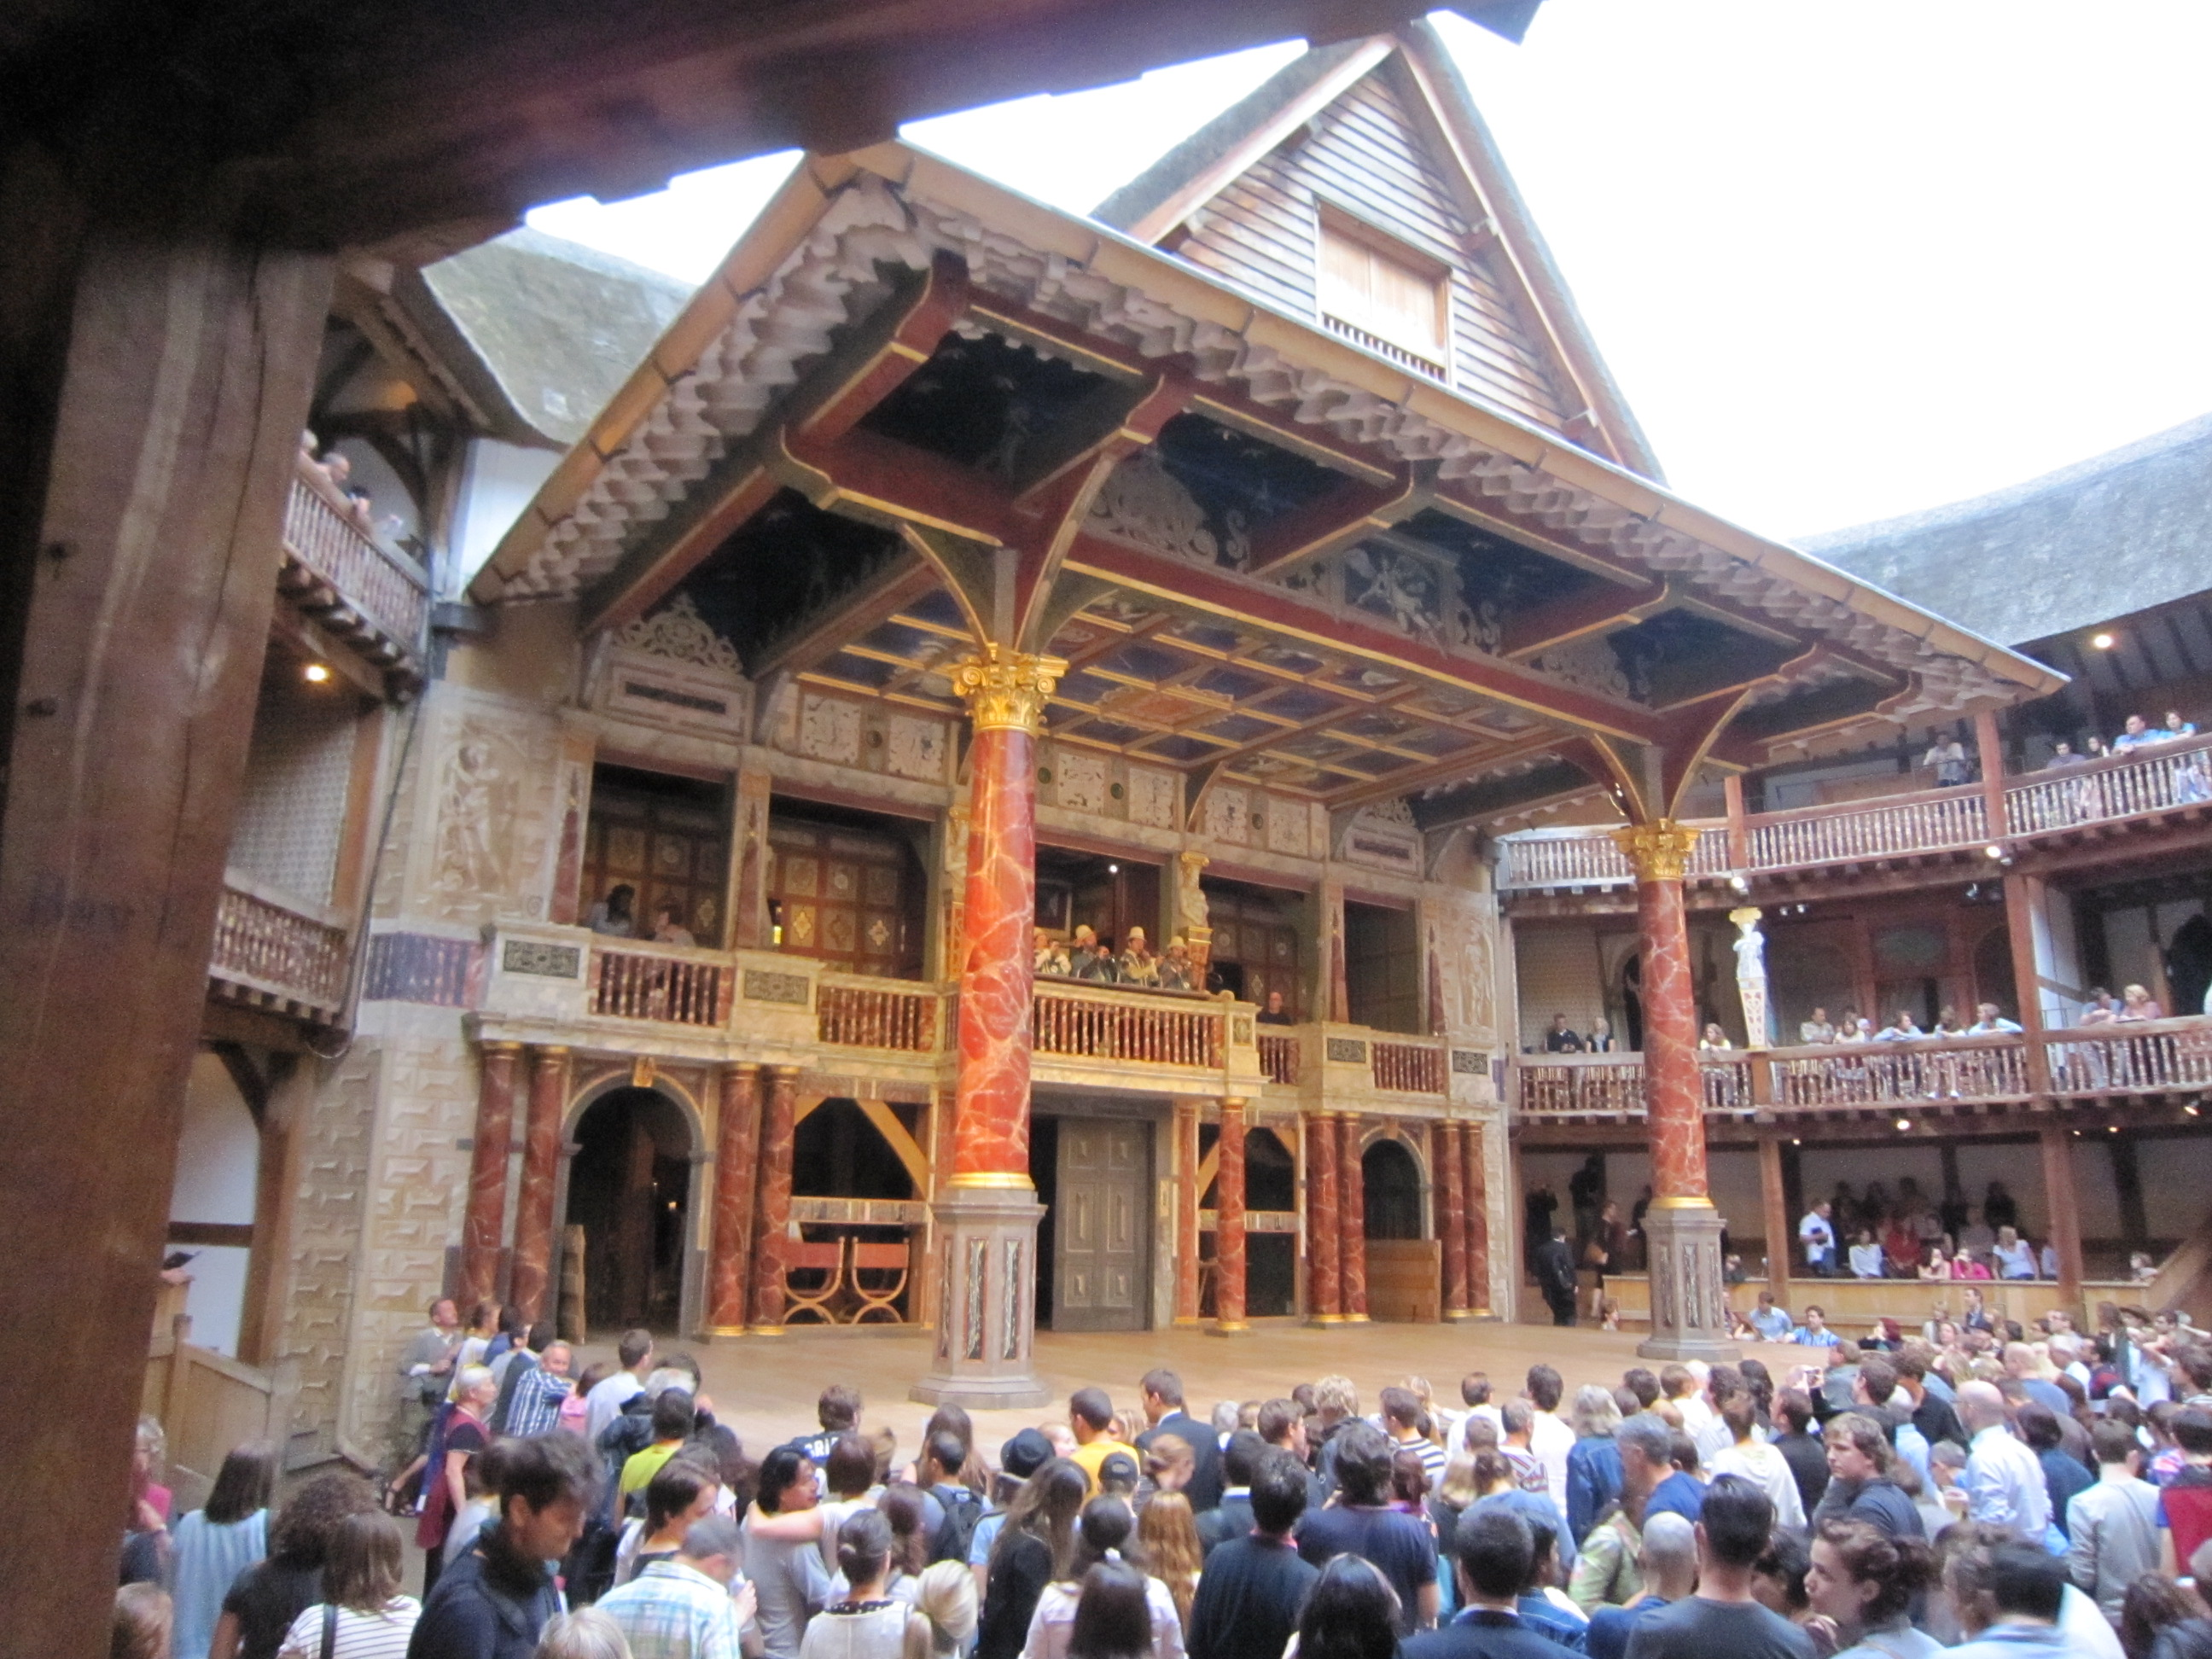 shakespeares globe theatre The globe theatre was a theatre in london associated with william shakespeare it was built in 1599 by shakespeare's playing company, the lord chamberlain's men, on.